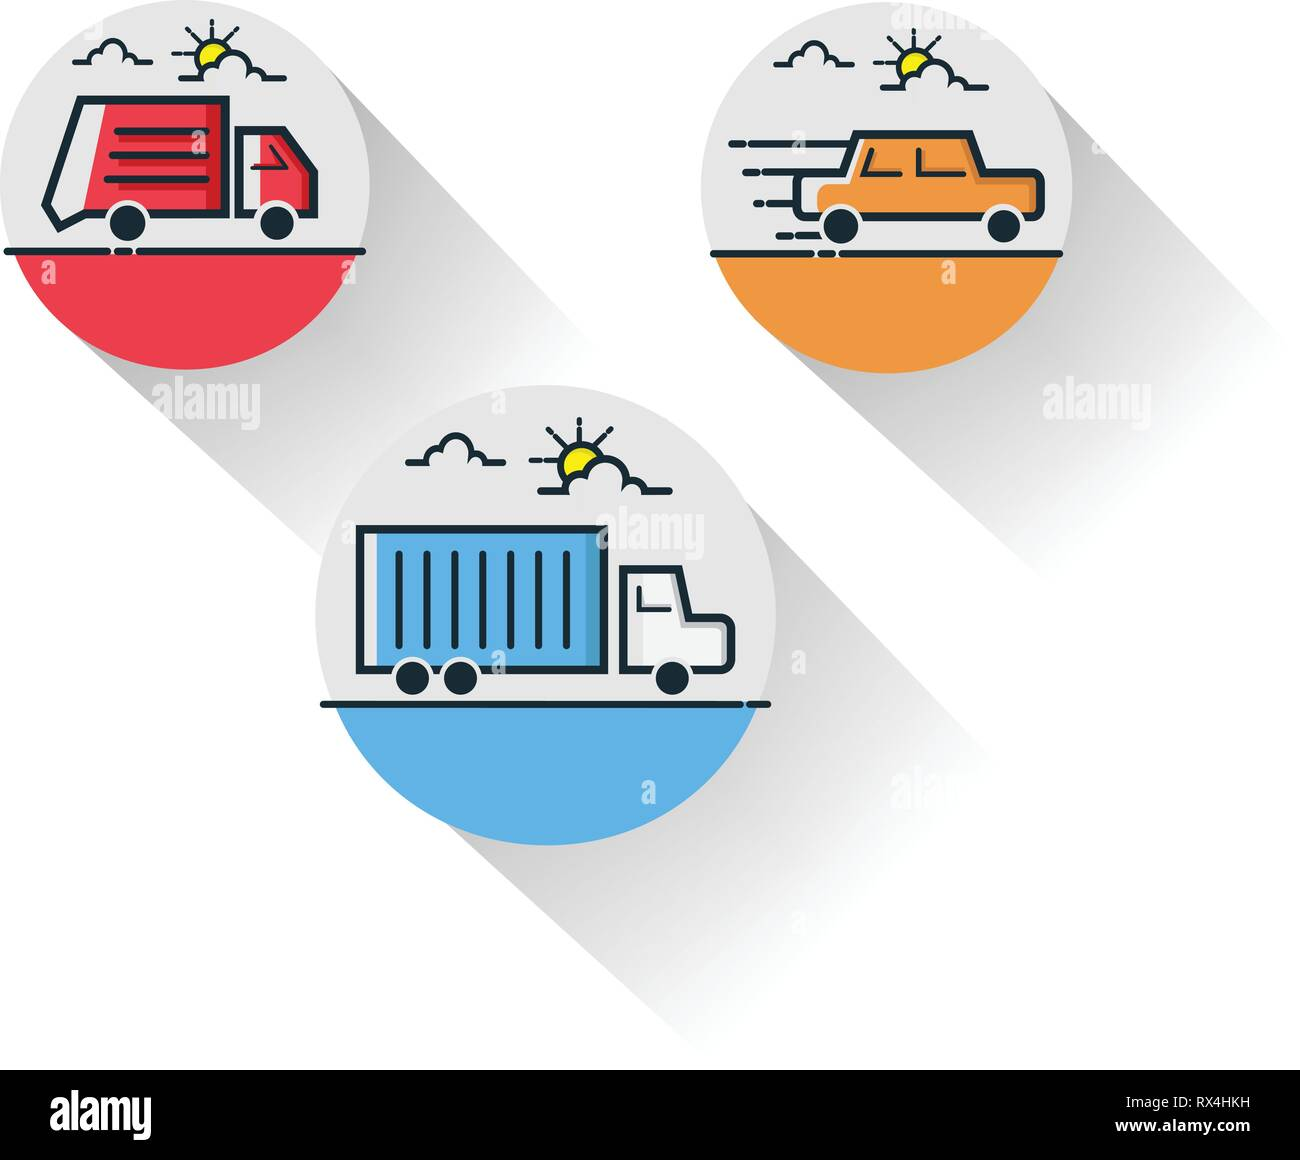 Möbel Modern Design Transportation Thin Line Icon Set For Web And Mobile Modern